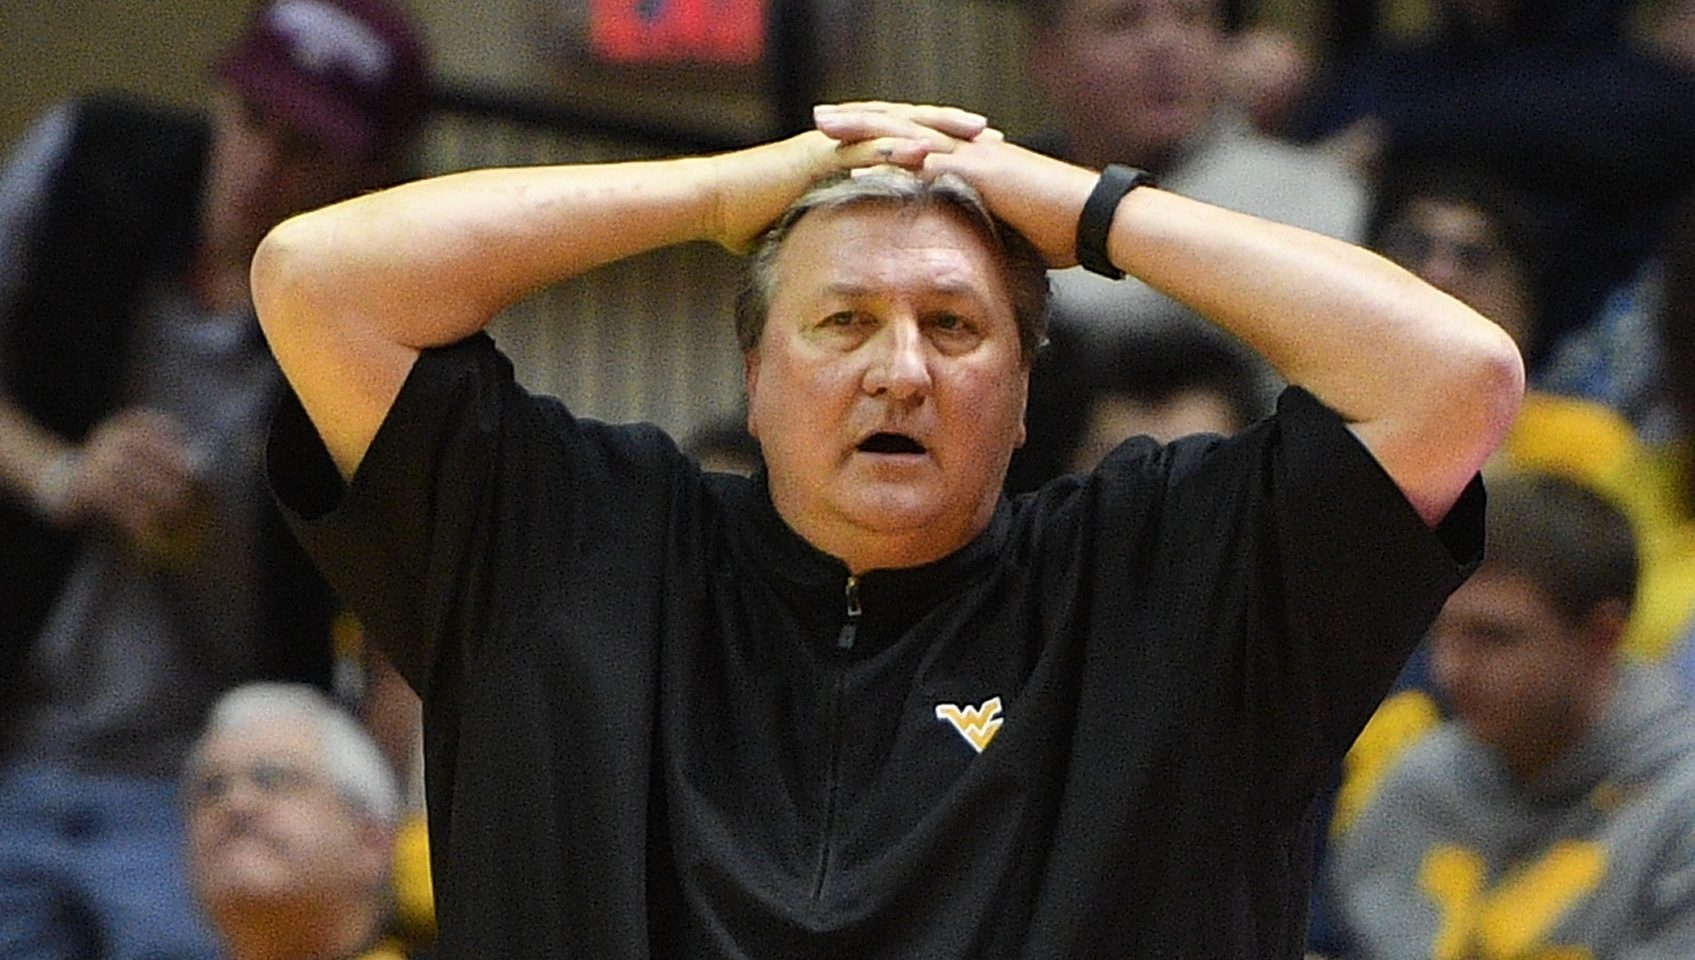 MORGANTOWN, WV - JANUARY 24:  Head coach Bob Huggins of the West Virginia Mountaineers reacts to a call in the second half during the game against the Kansas Jayhawks at WVU Coliseum on January 24, 2017 in Morgantown, West Virginia. (Photo by Justin Berl/Getty Images)